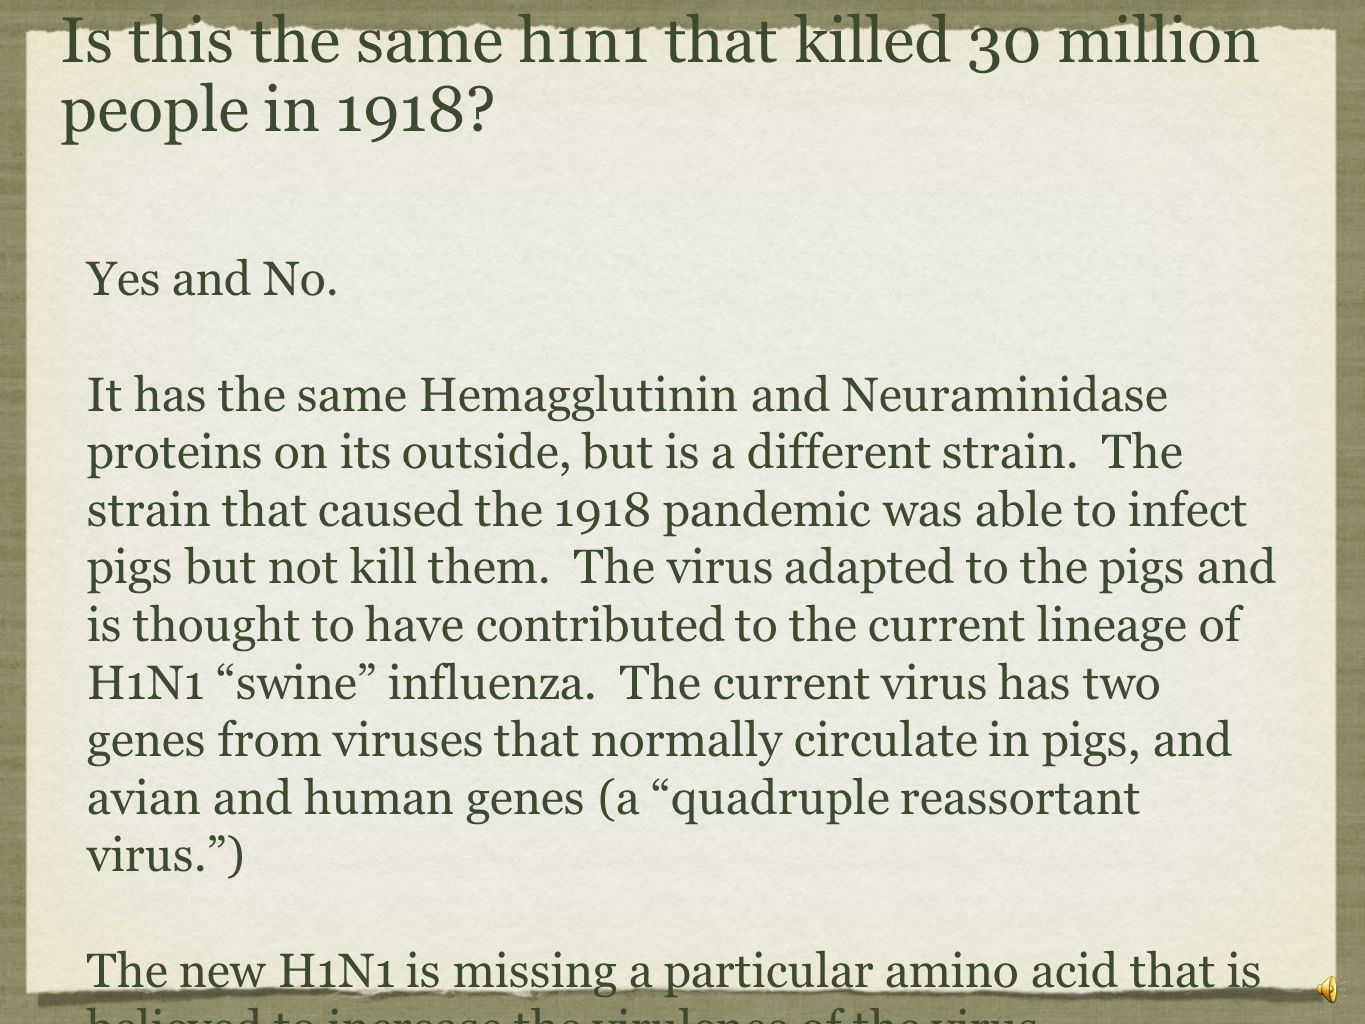 Is this the same h1n1 that killed 30 million people in 1918